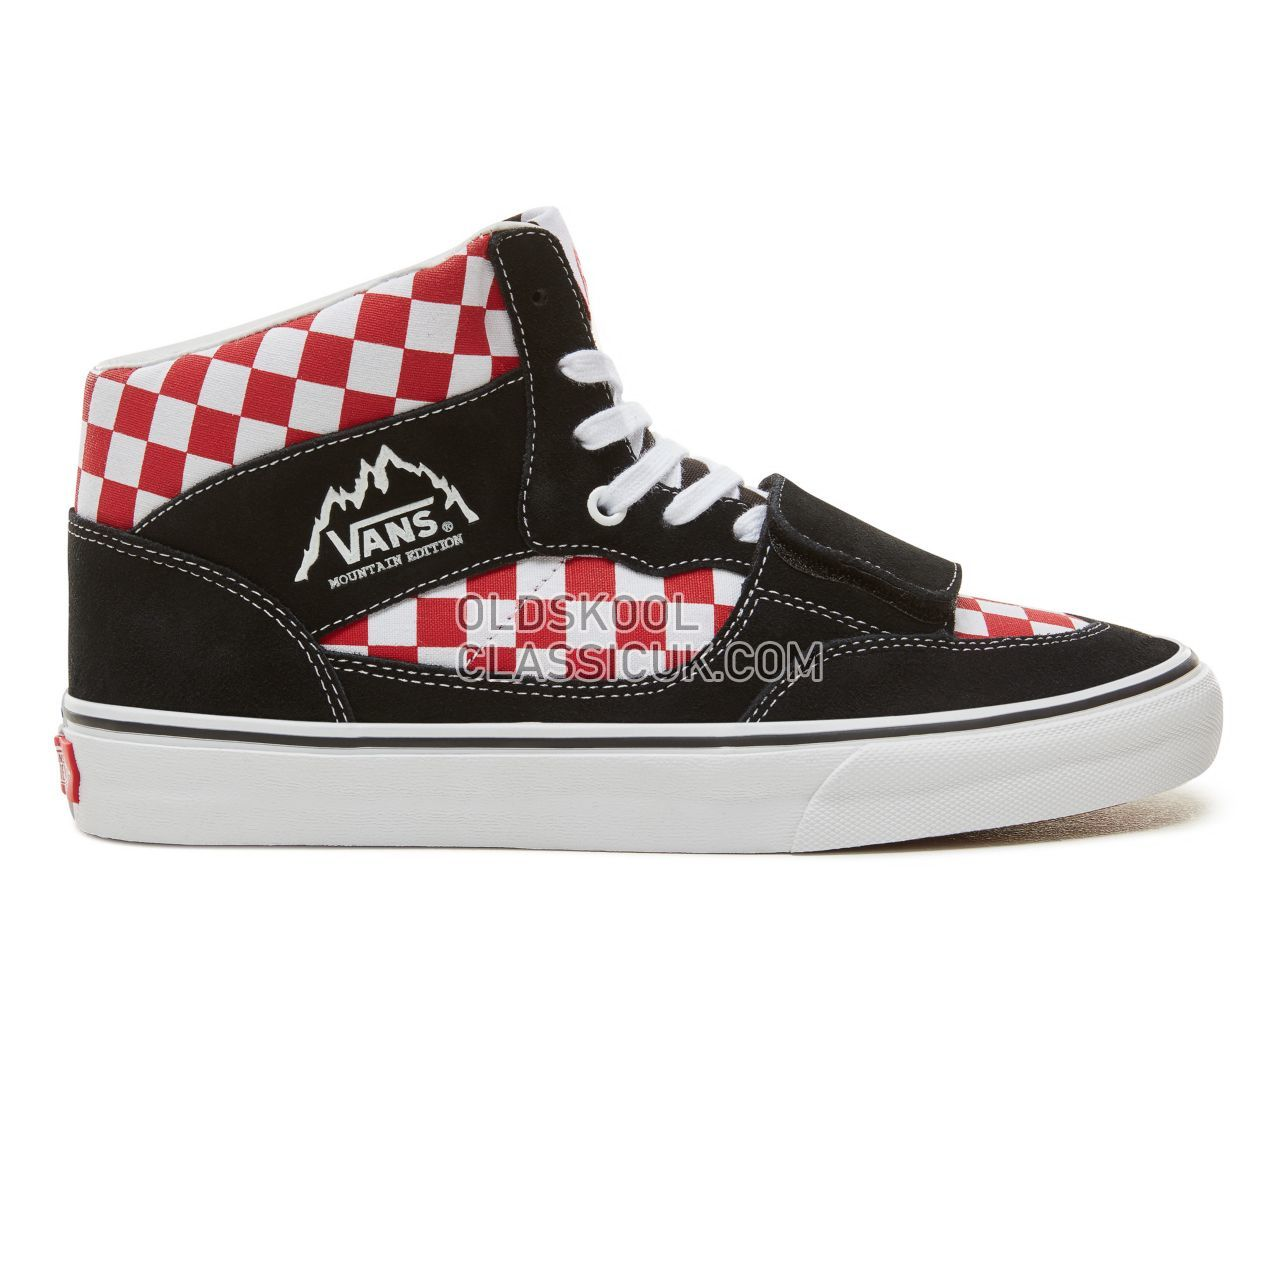 3e09b982ee Vans Suede Checkerboard Mountain Edition Sneakers Mens (Checkerboard)  Black Red VA3TKG35U Shoes ...